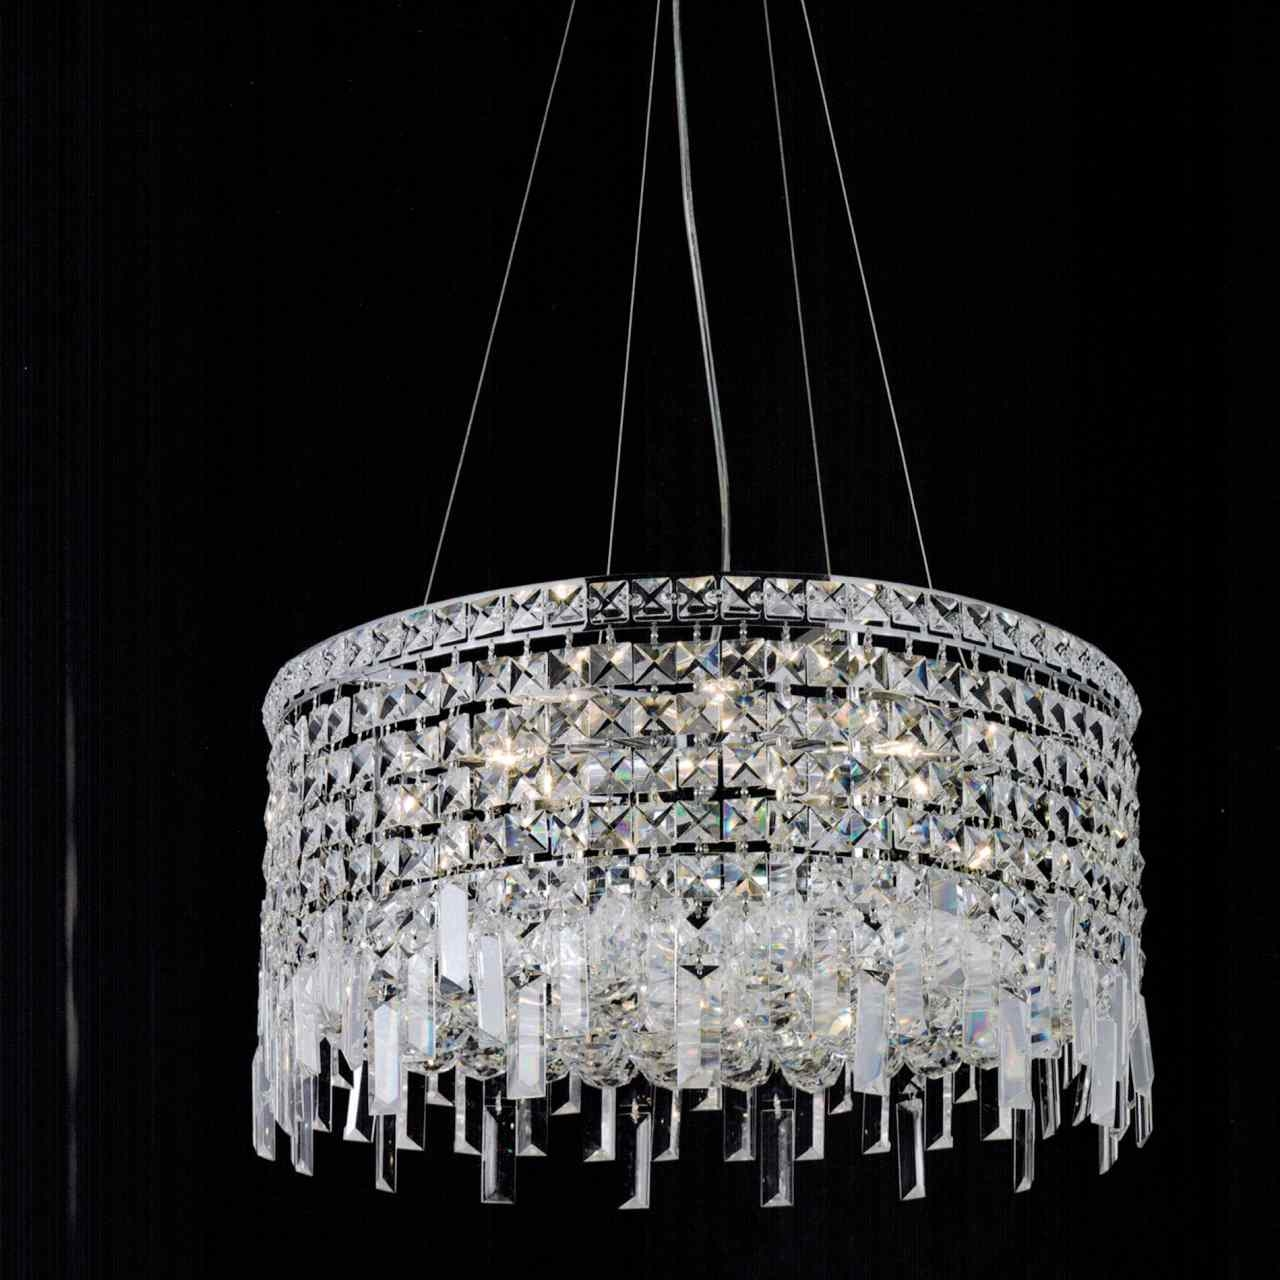 Brizzo Lighting Stores 16 Bossolo Transitional Crystal Round Throughout Chrome And Crystal Chandelier (Photo 13 of 15)